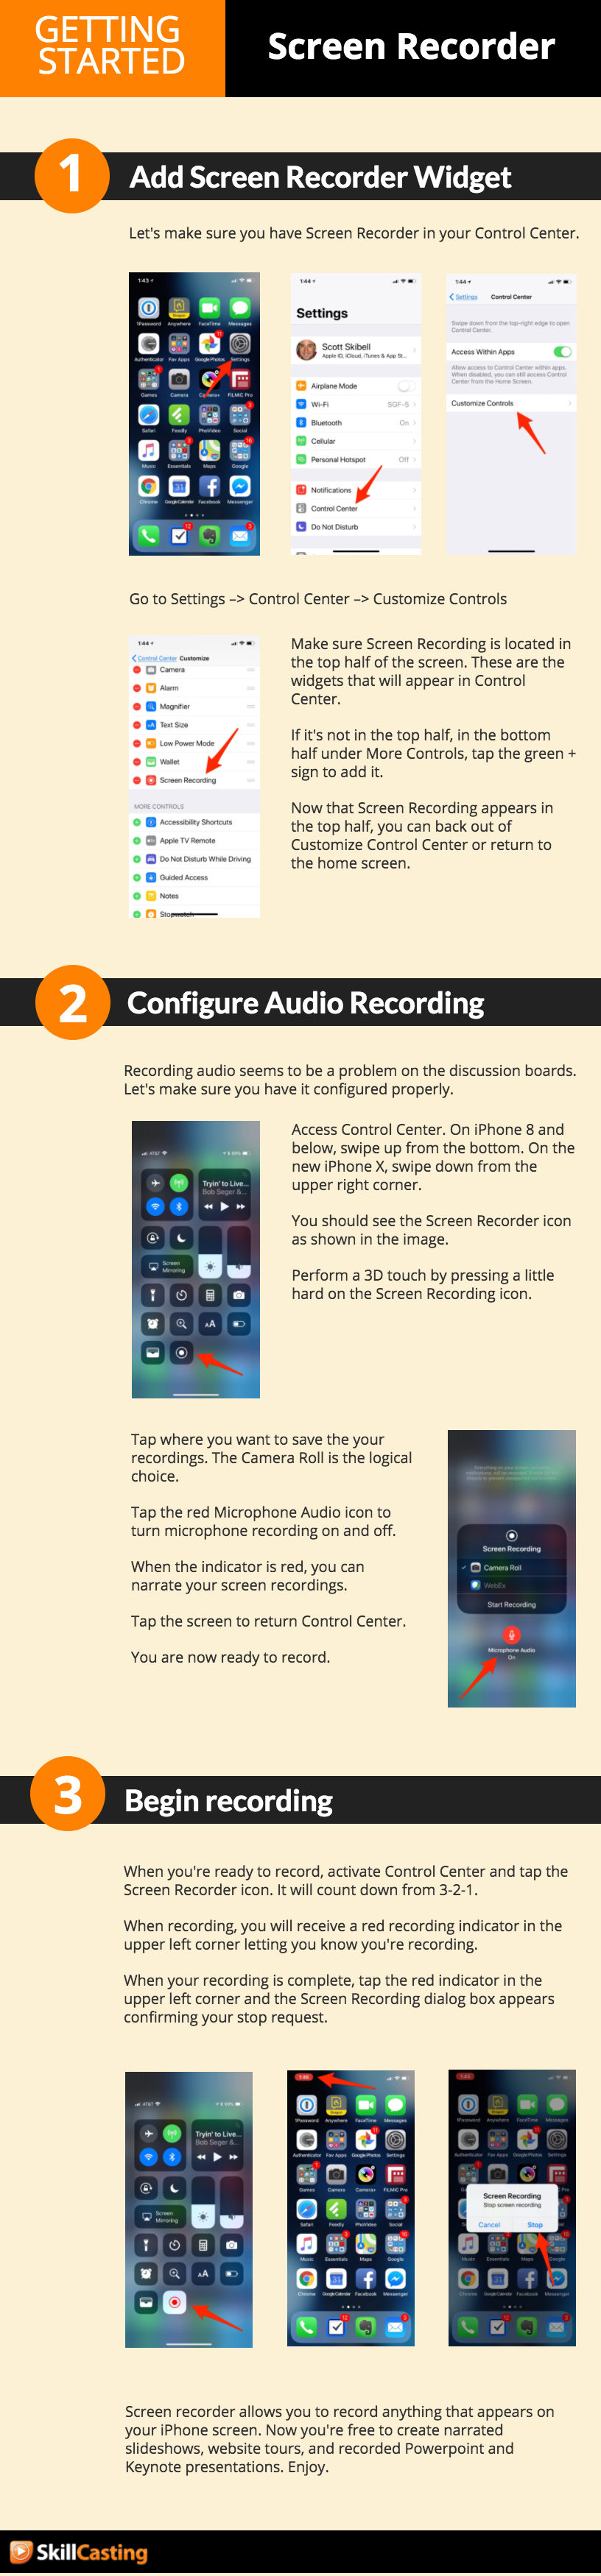 screen-recorder-steps.png